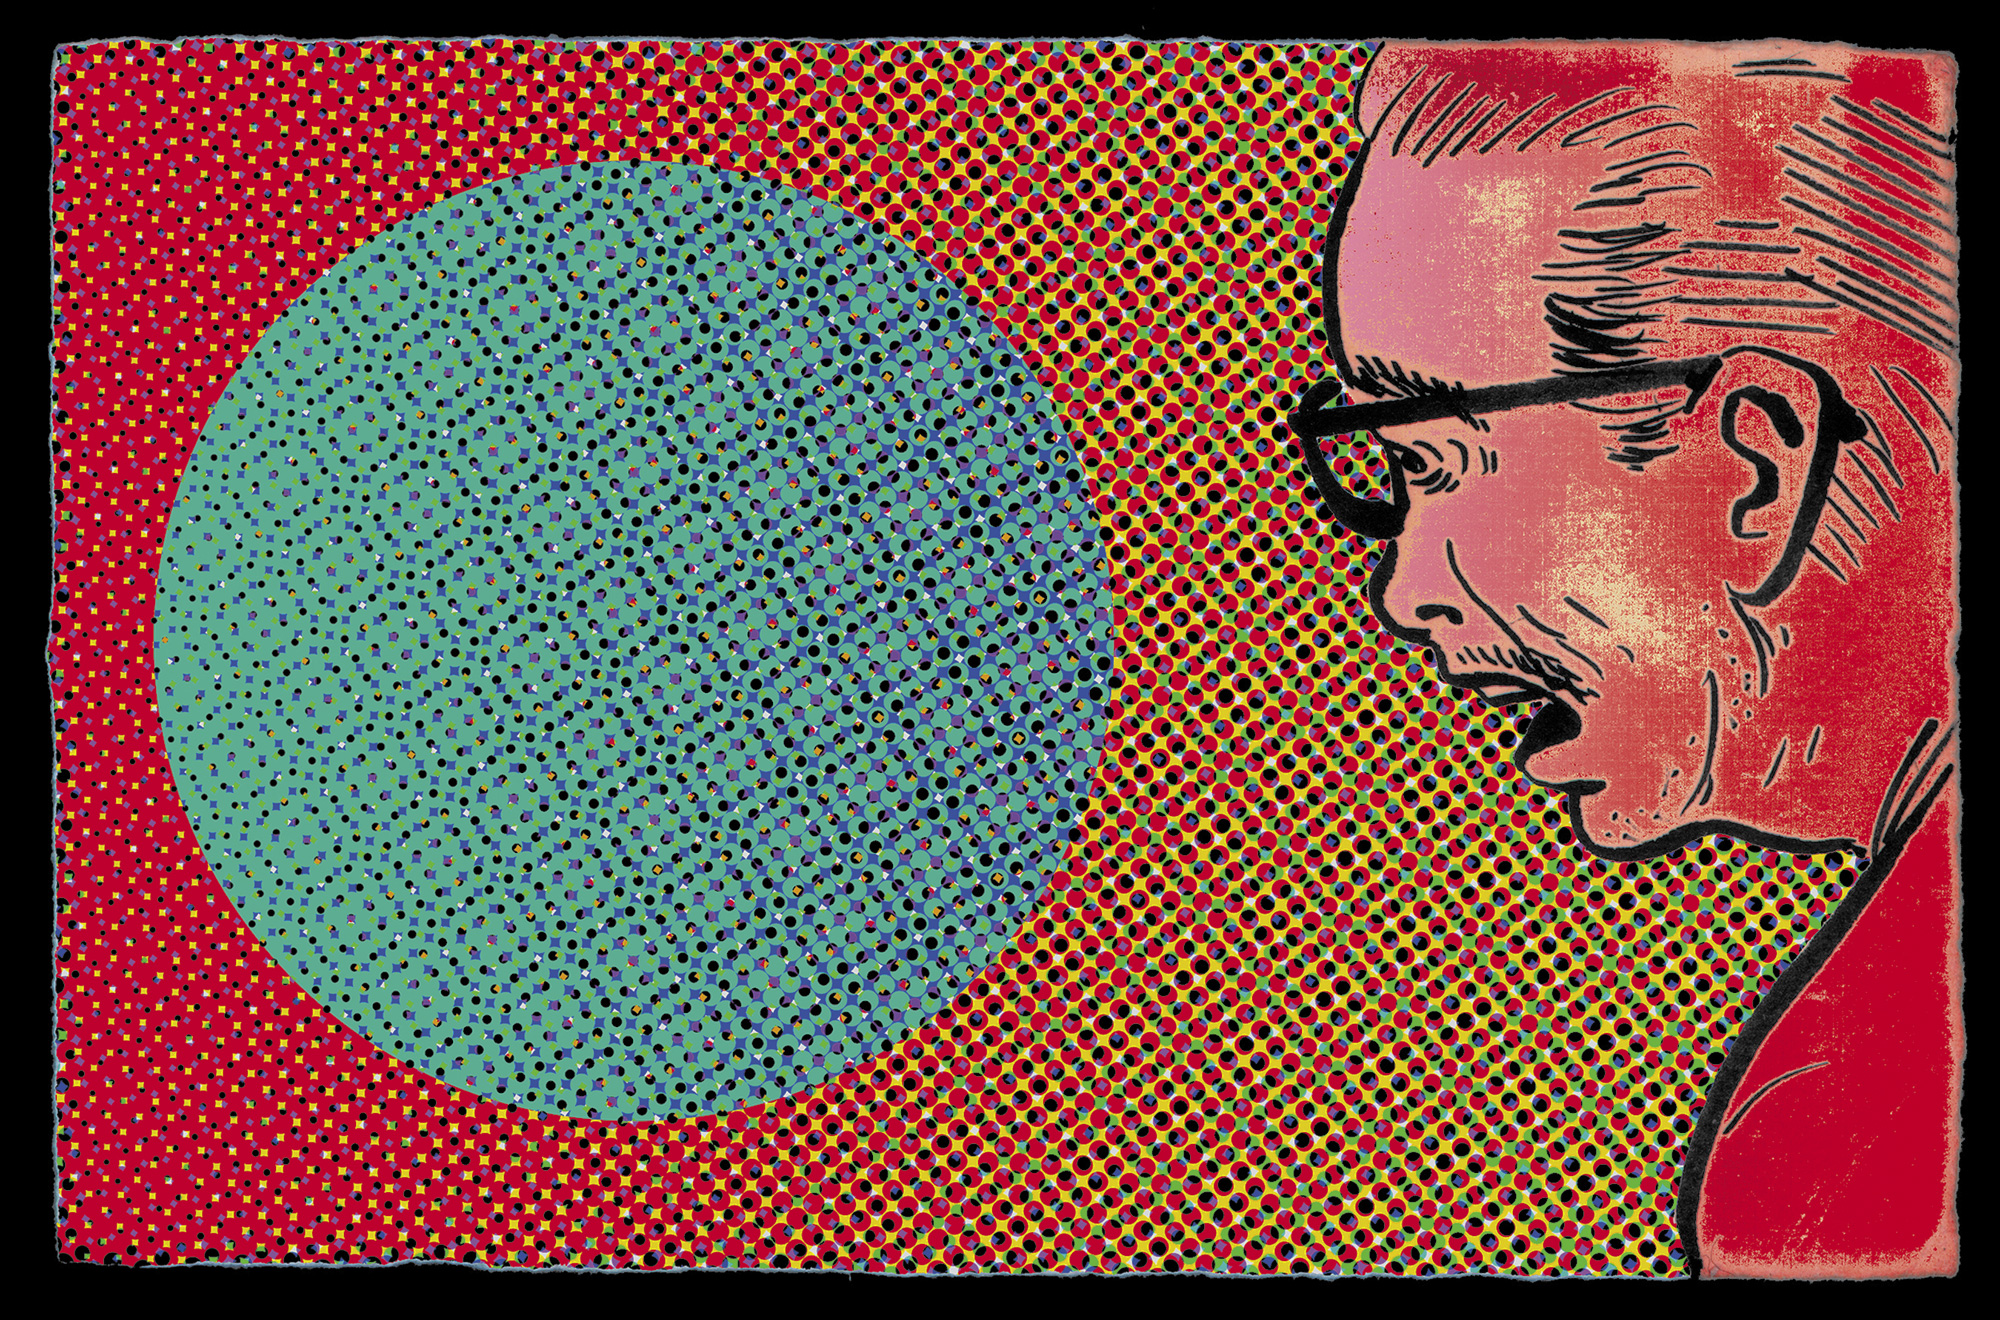 Mark-Mothersbaugh's-Monument-to-the-conquerors-of-space-1964